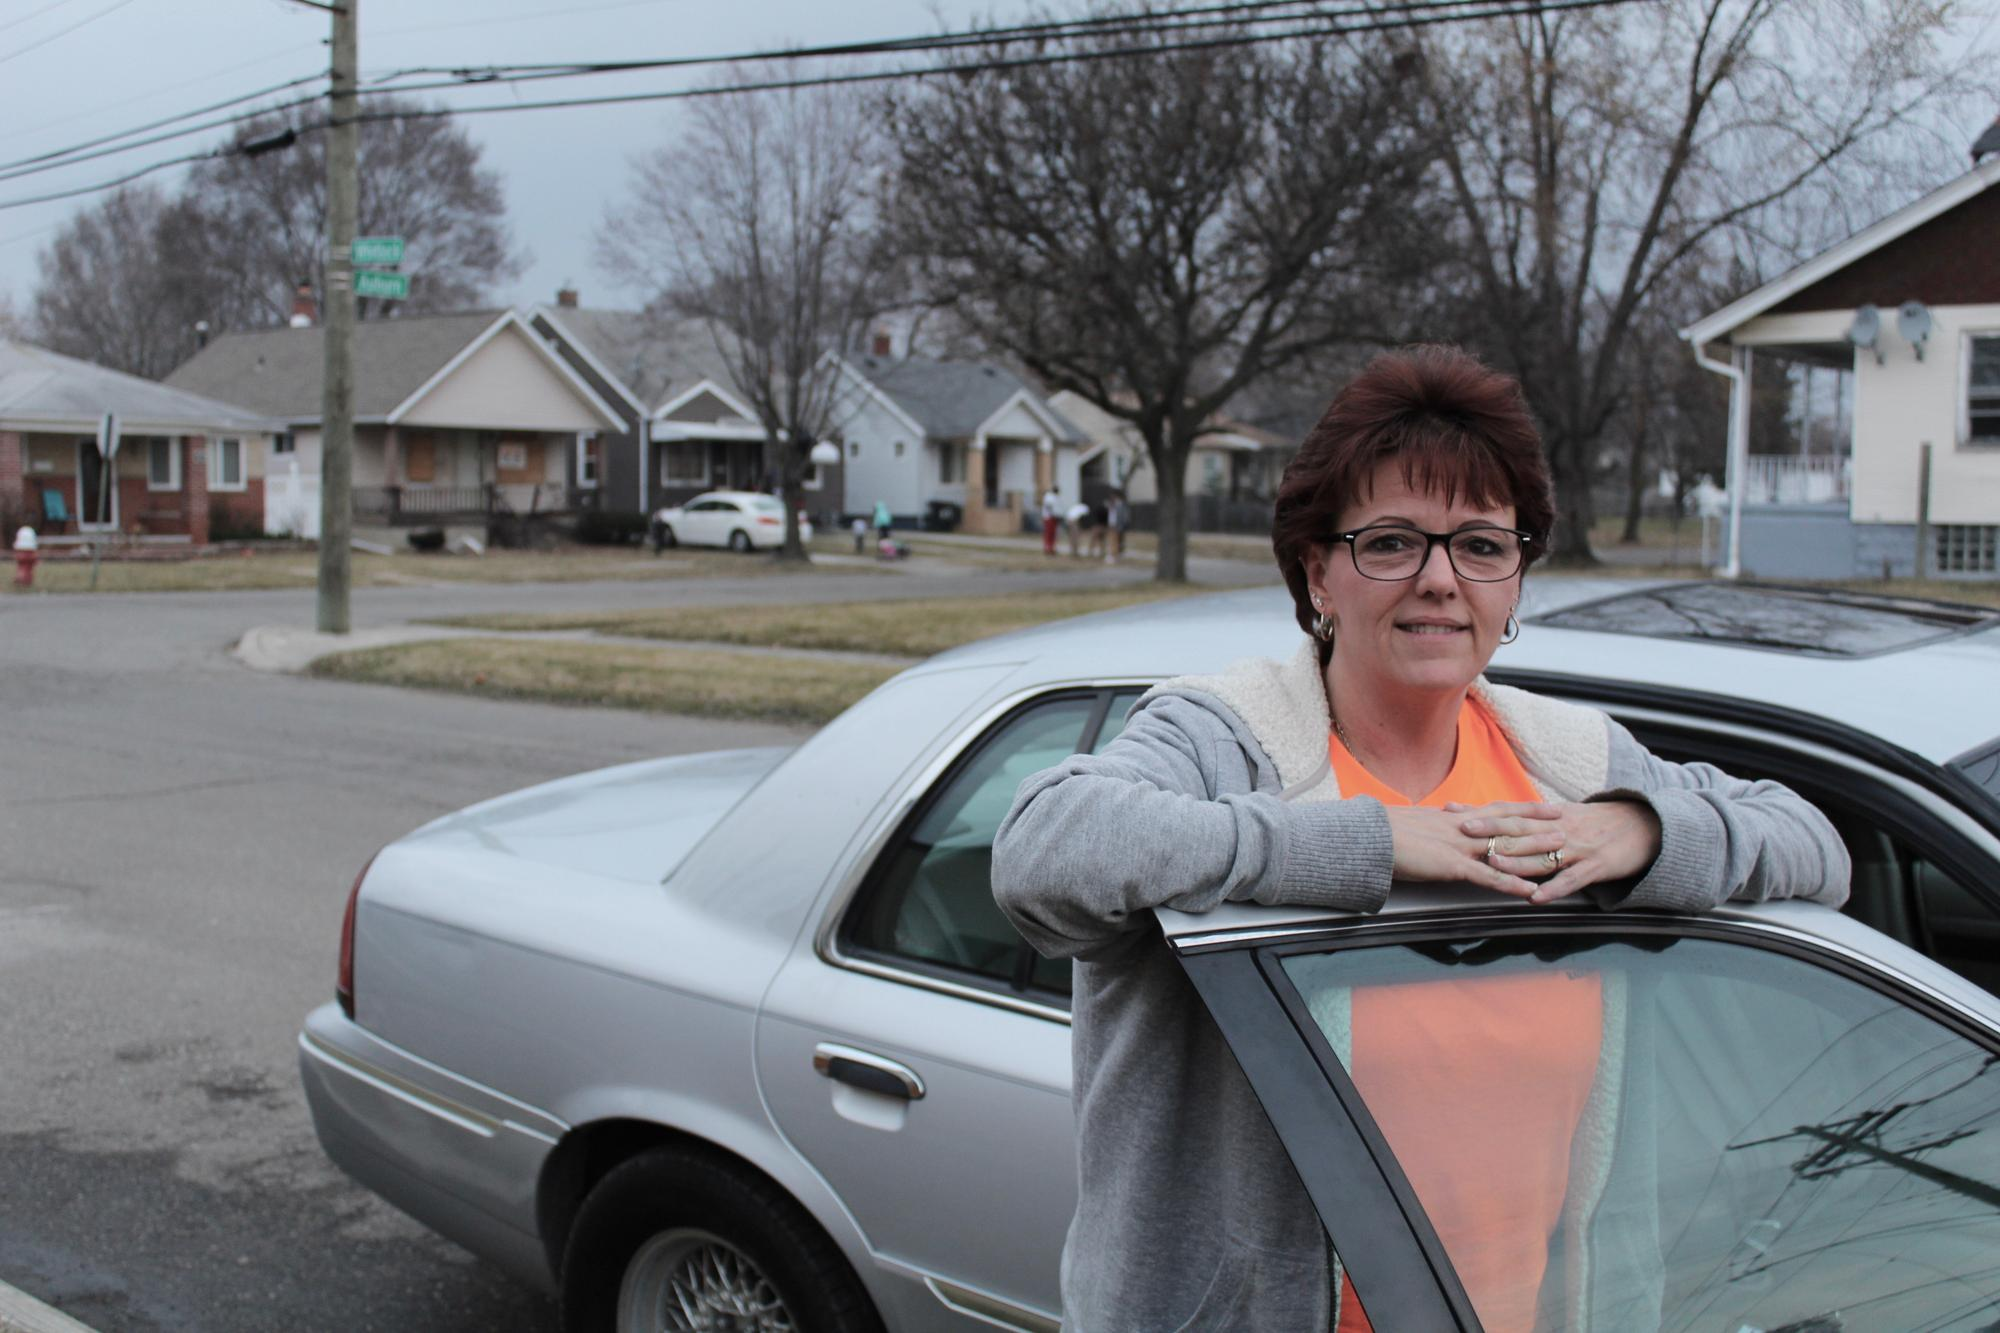 Barb Matney outside the Grand Marquis she patrols her neighborhood in.WDET/Laura Herberg